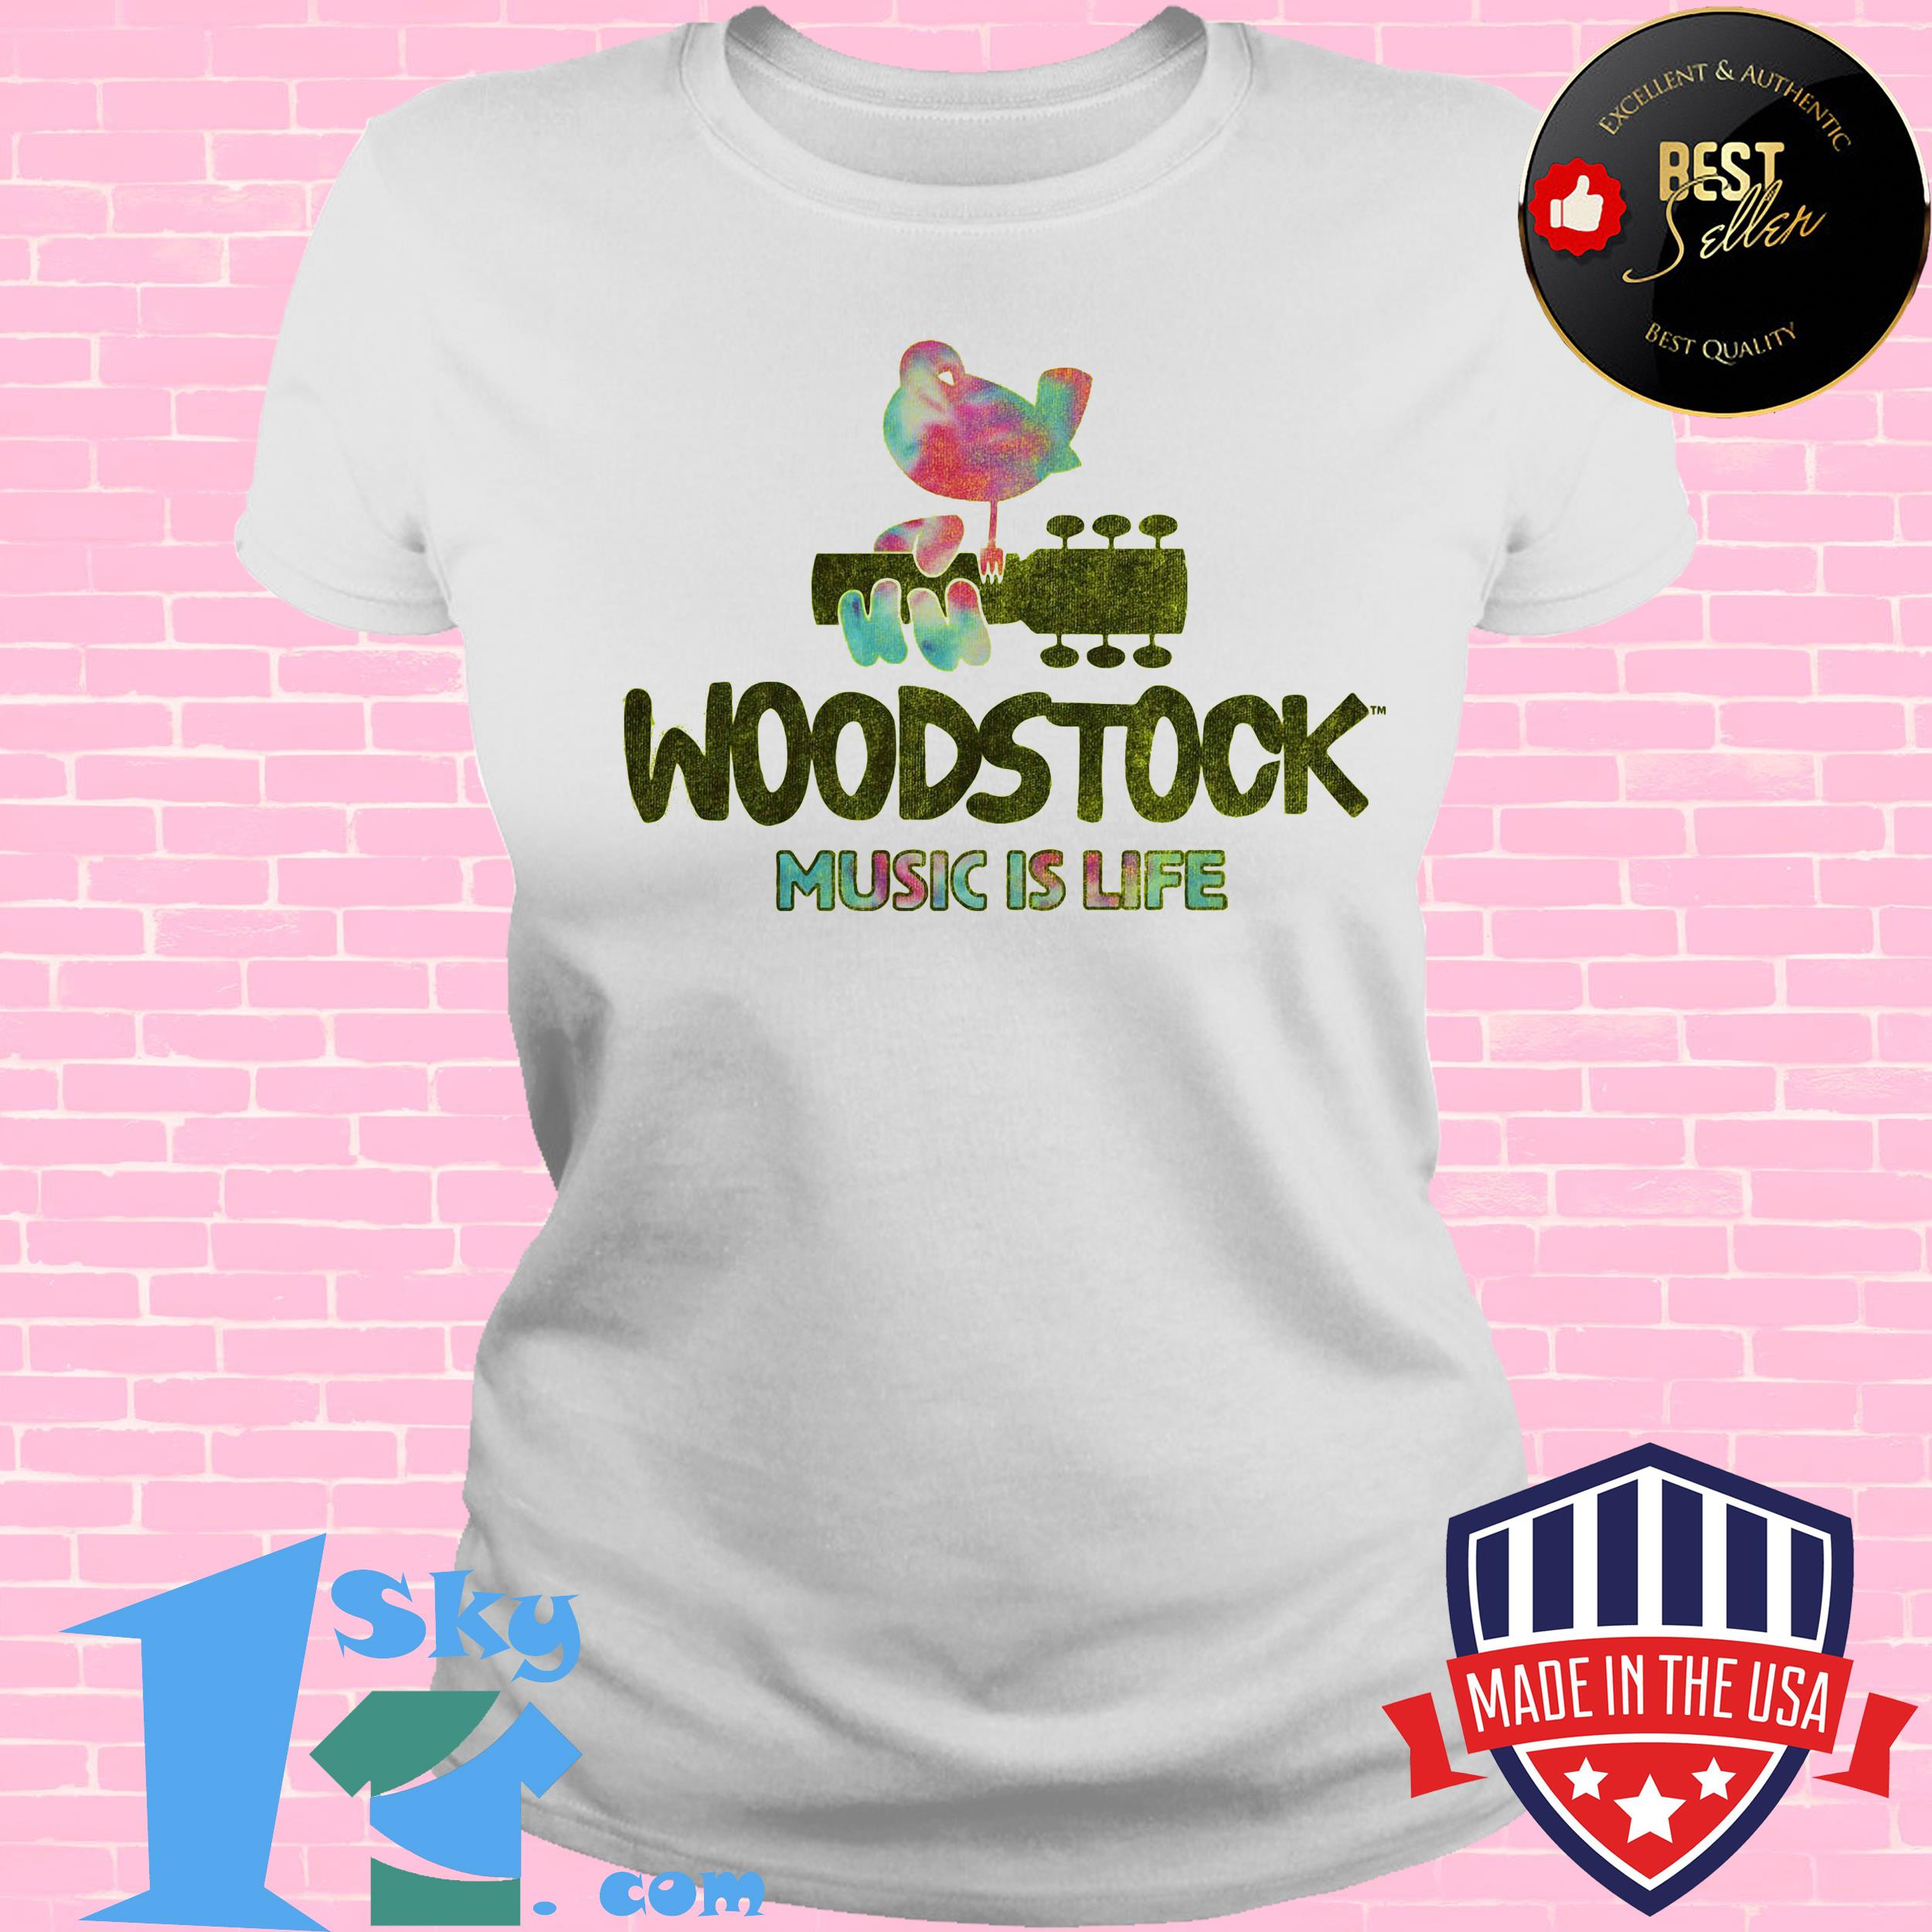 woodstock festival music is life bird ladies tee - Woodstock Festival  Music is Life Bird Shirt